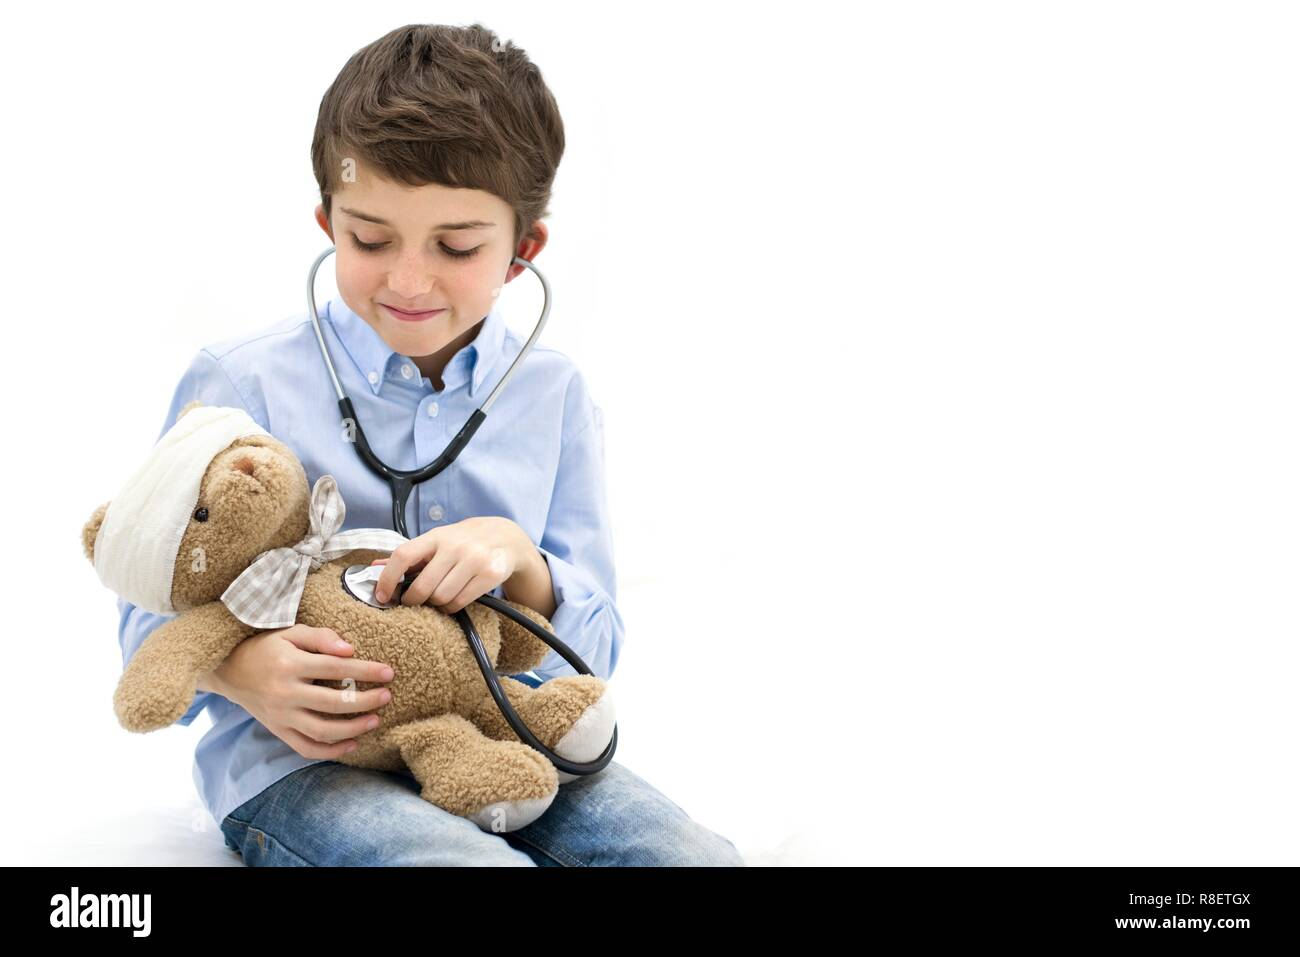 Boy role playing with teddy bear and stethoscope. - Stock Image